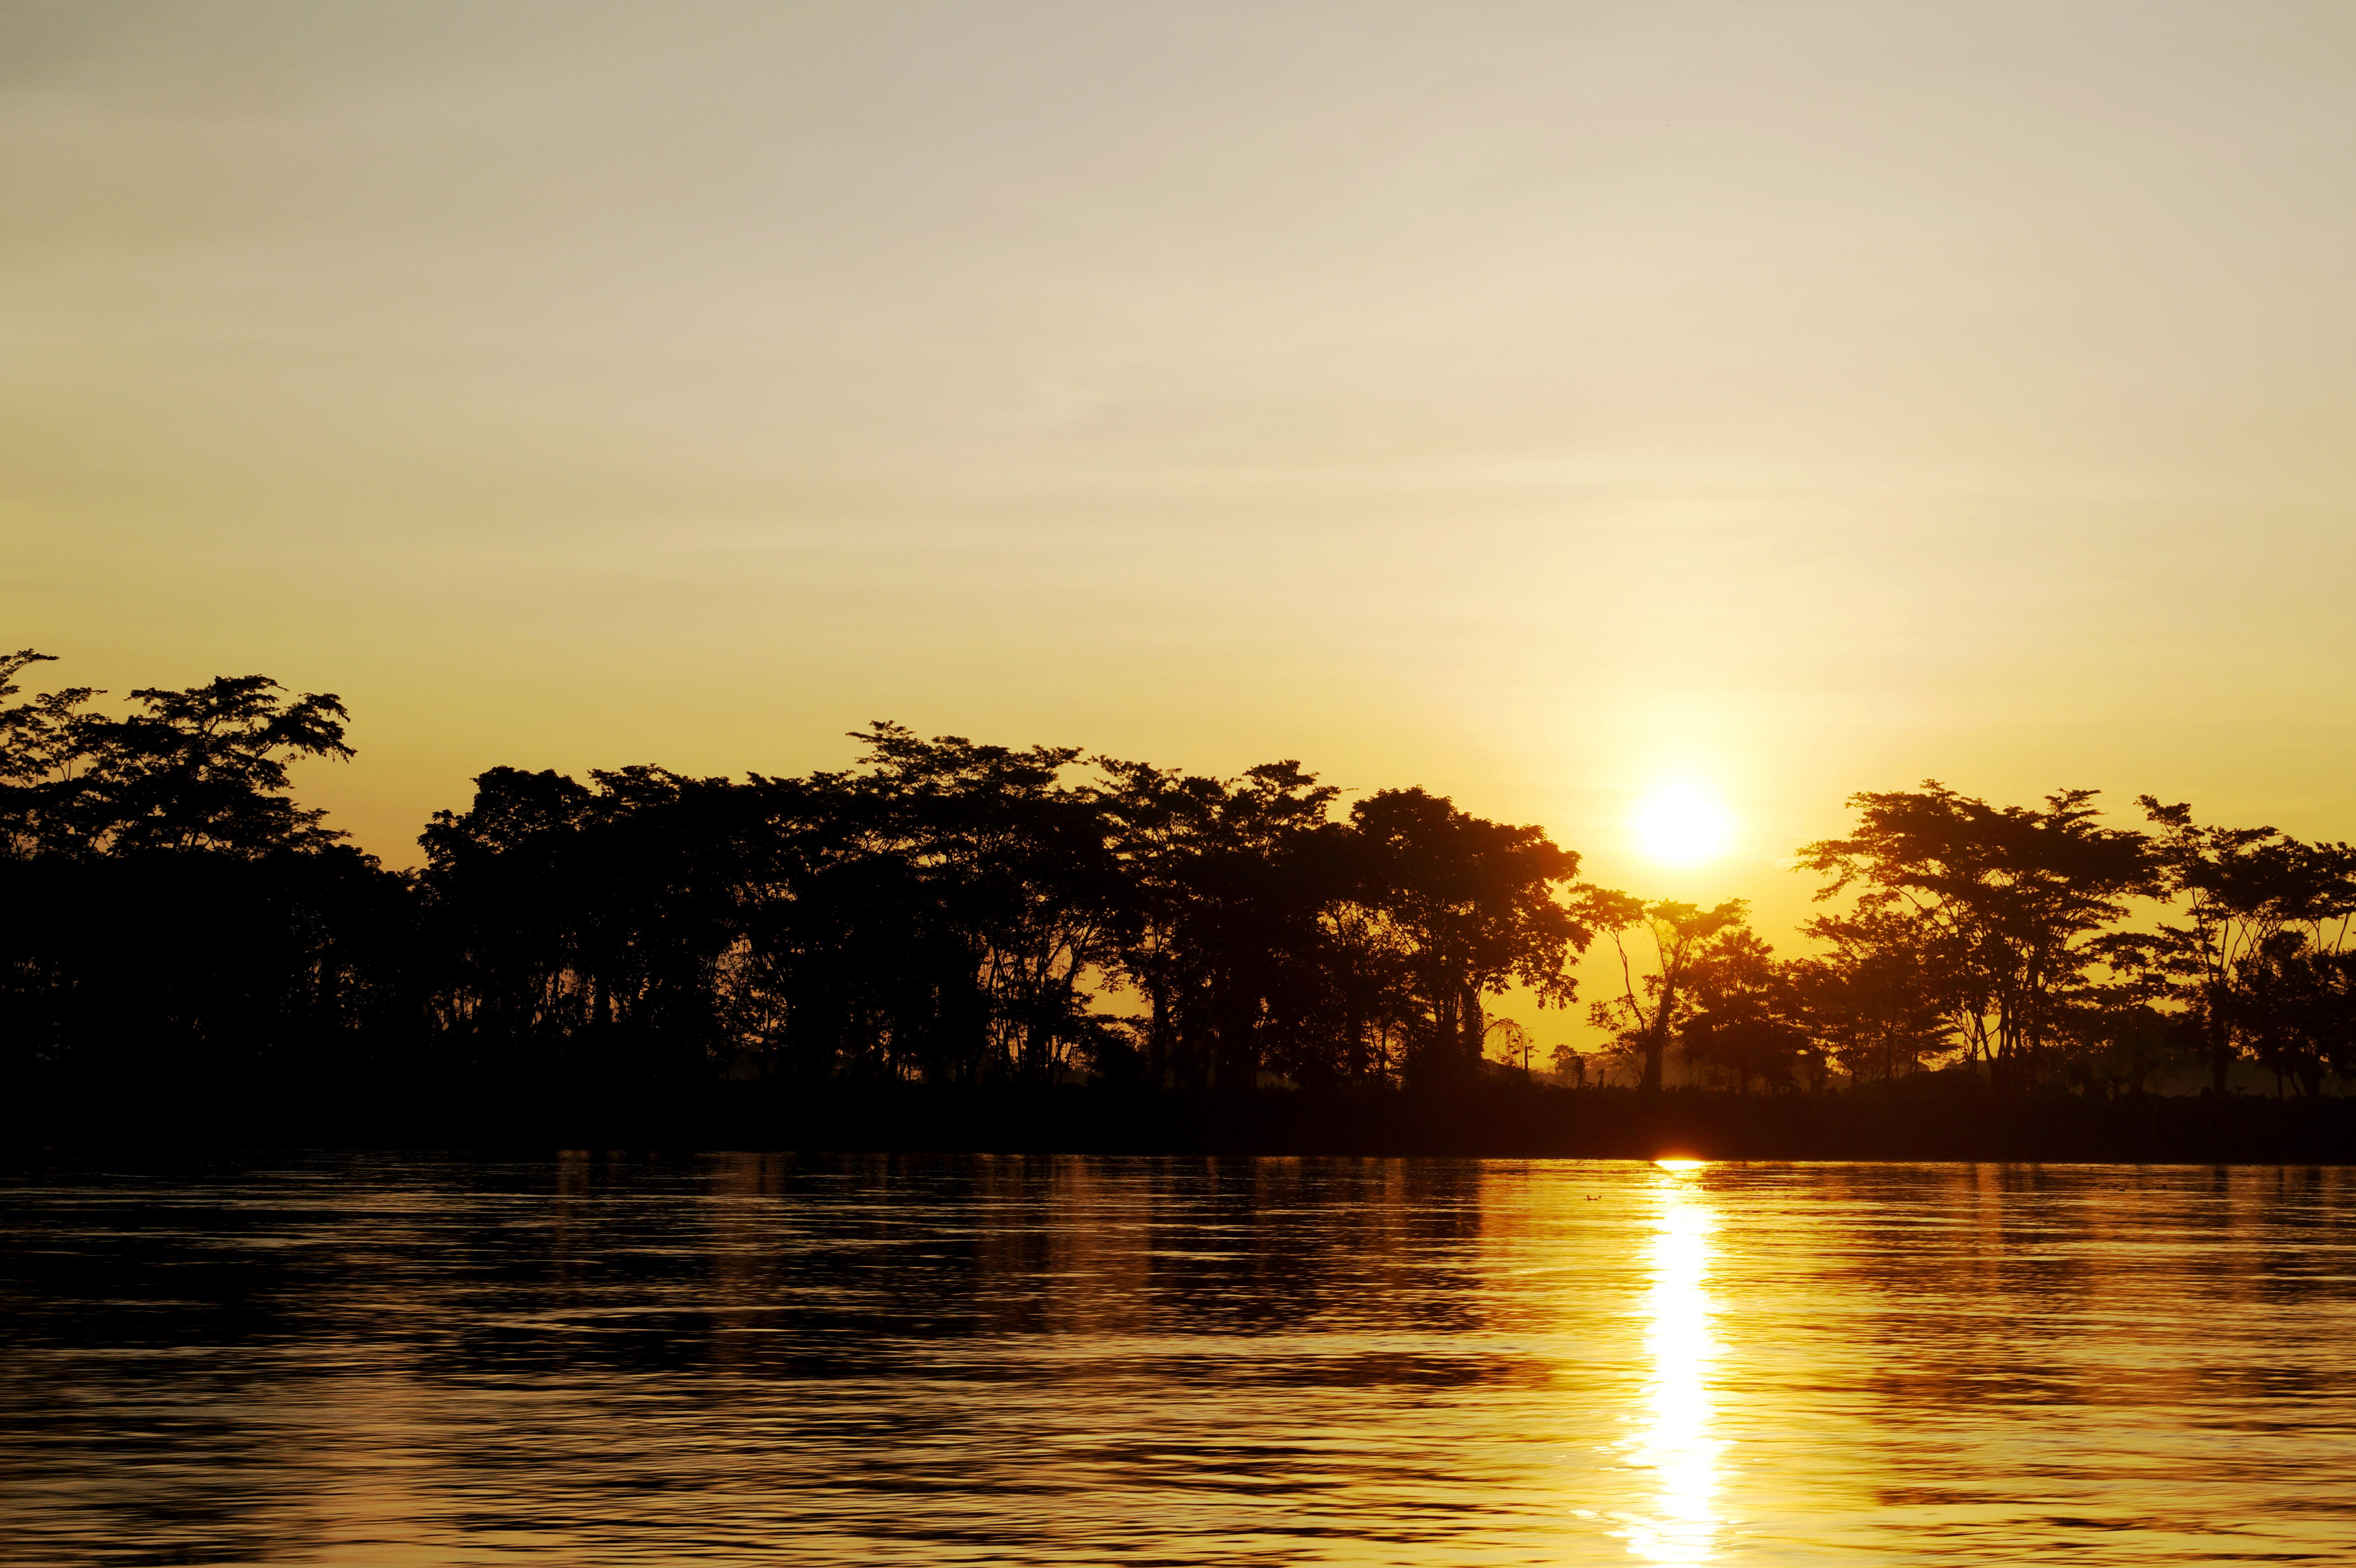 sunset-over-the-magdalena-river-in-colombia